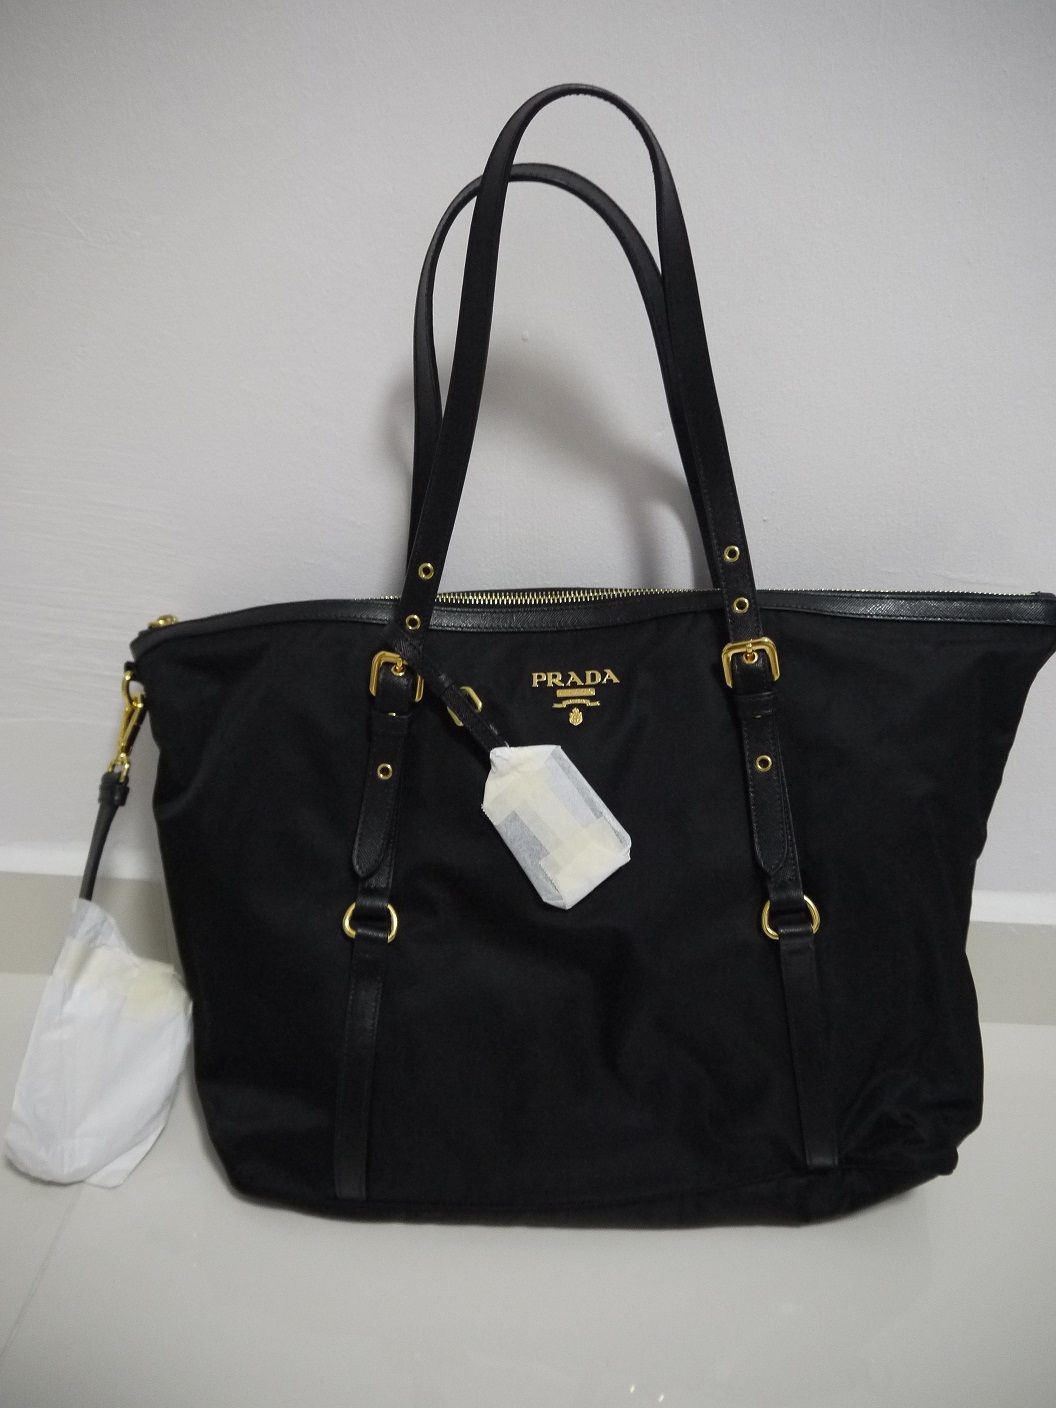 a8f8dba9f5 Prada Nylon Tote Bag